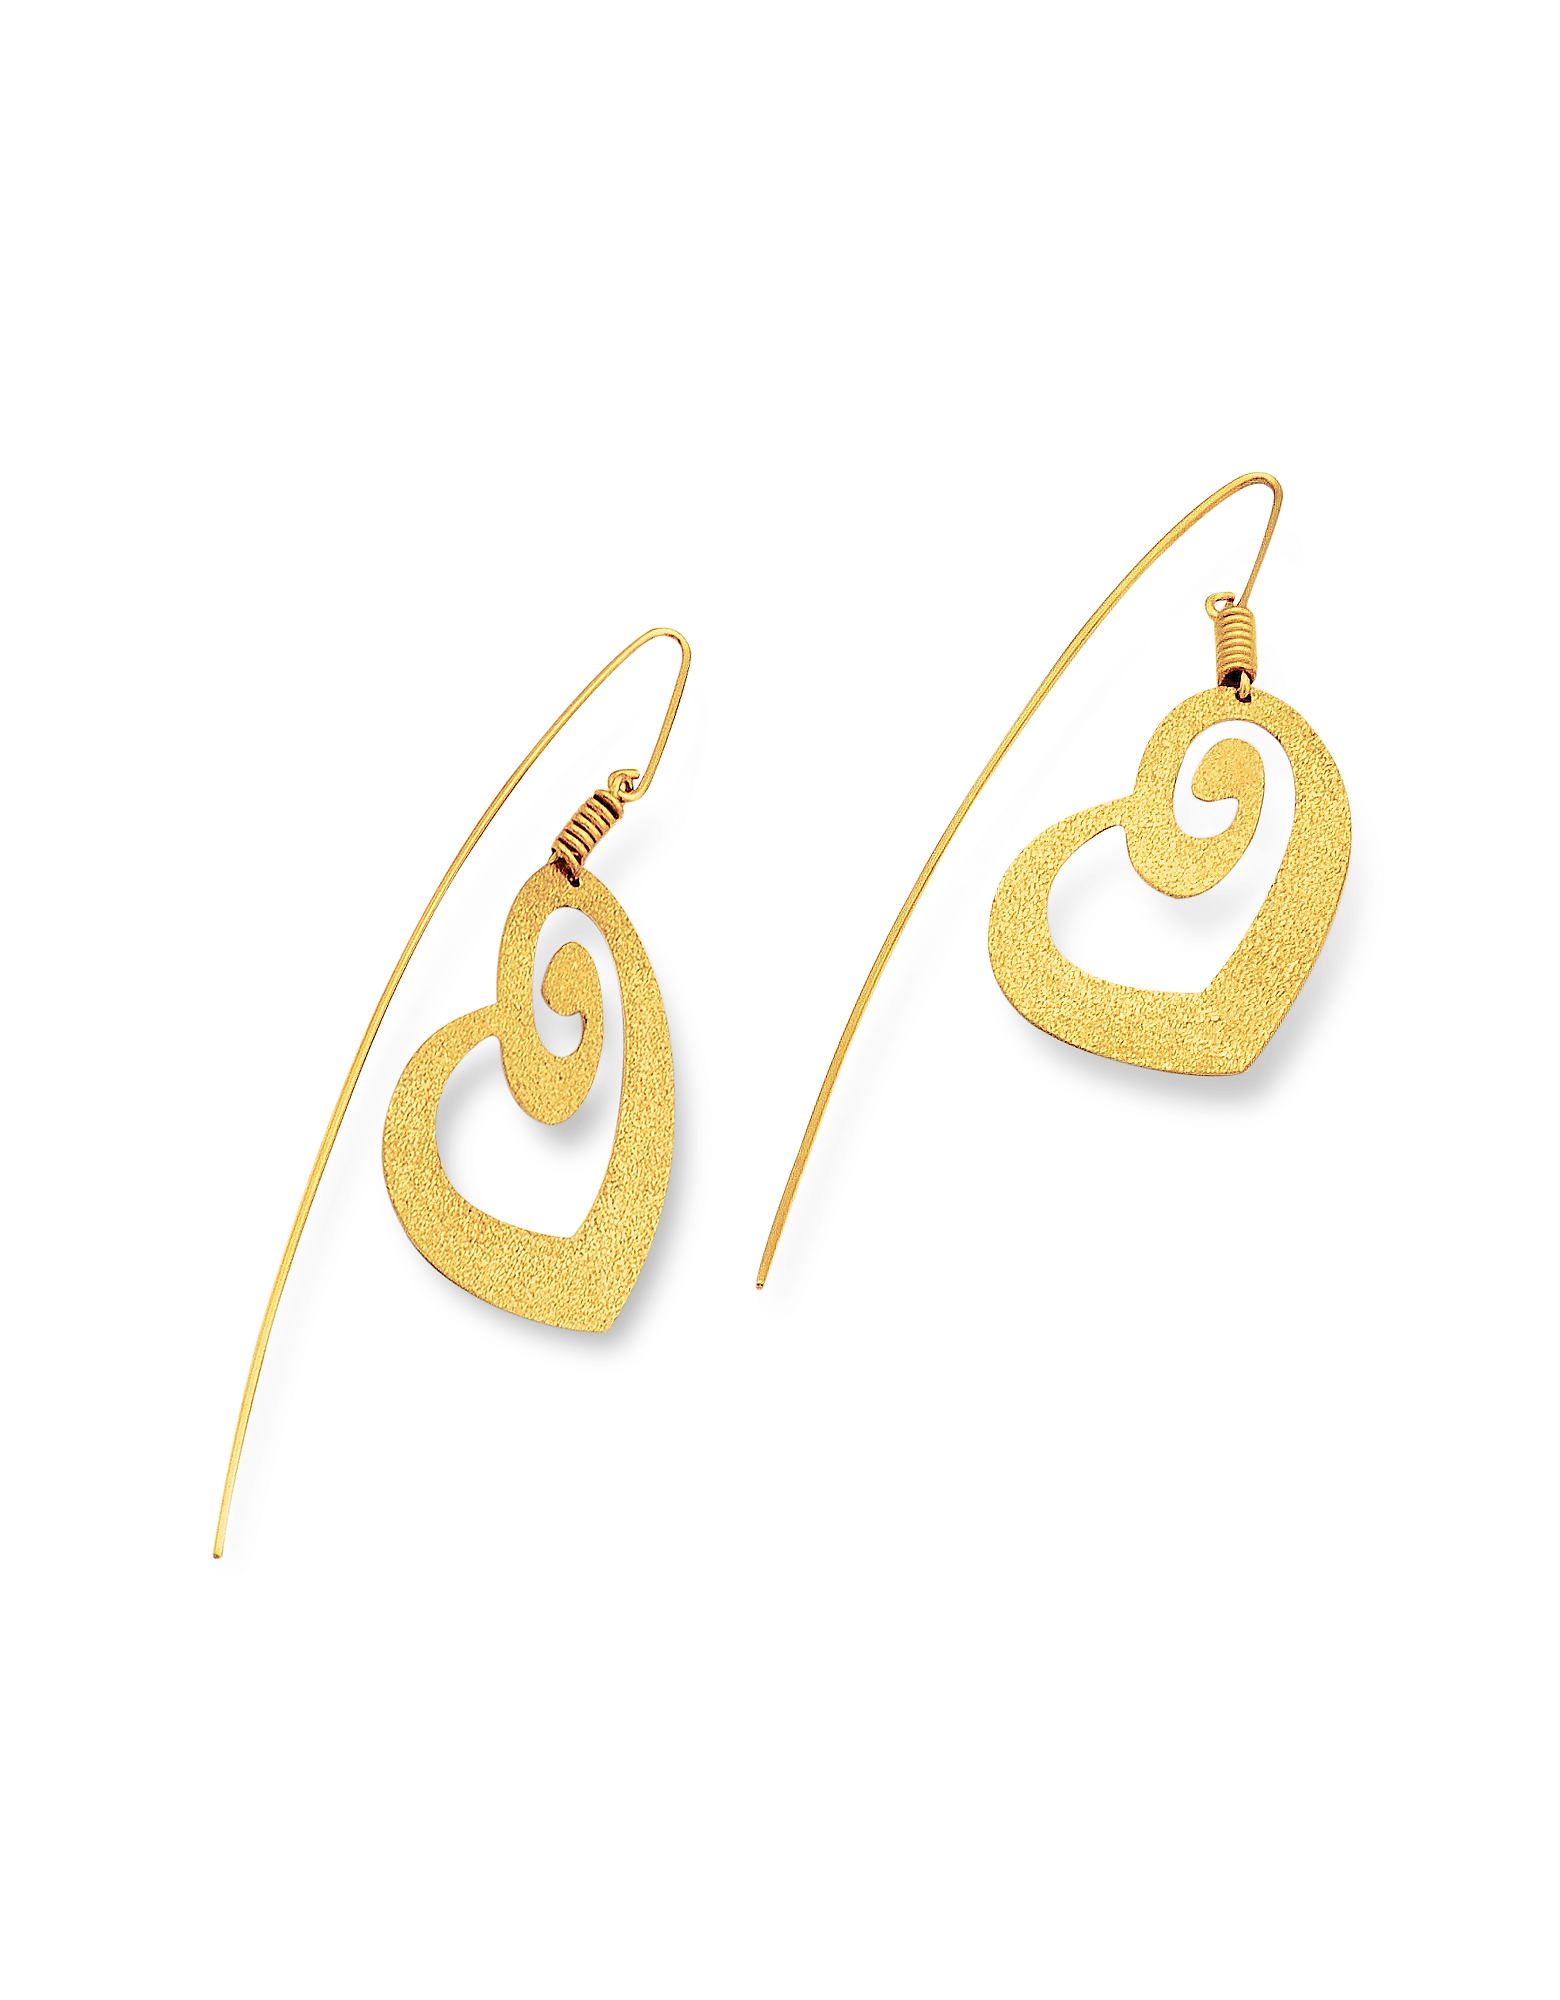 Stefano Patriarchi Earrings, Golden Silver Etched Heart Drop Earrings